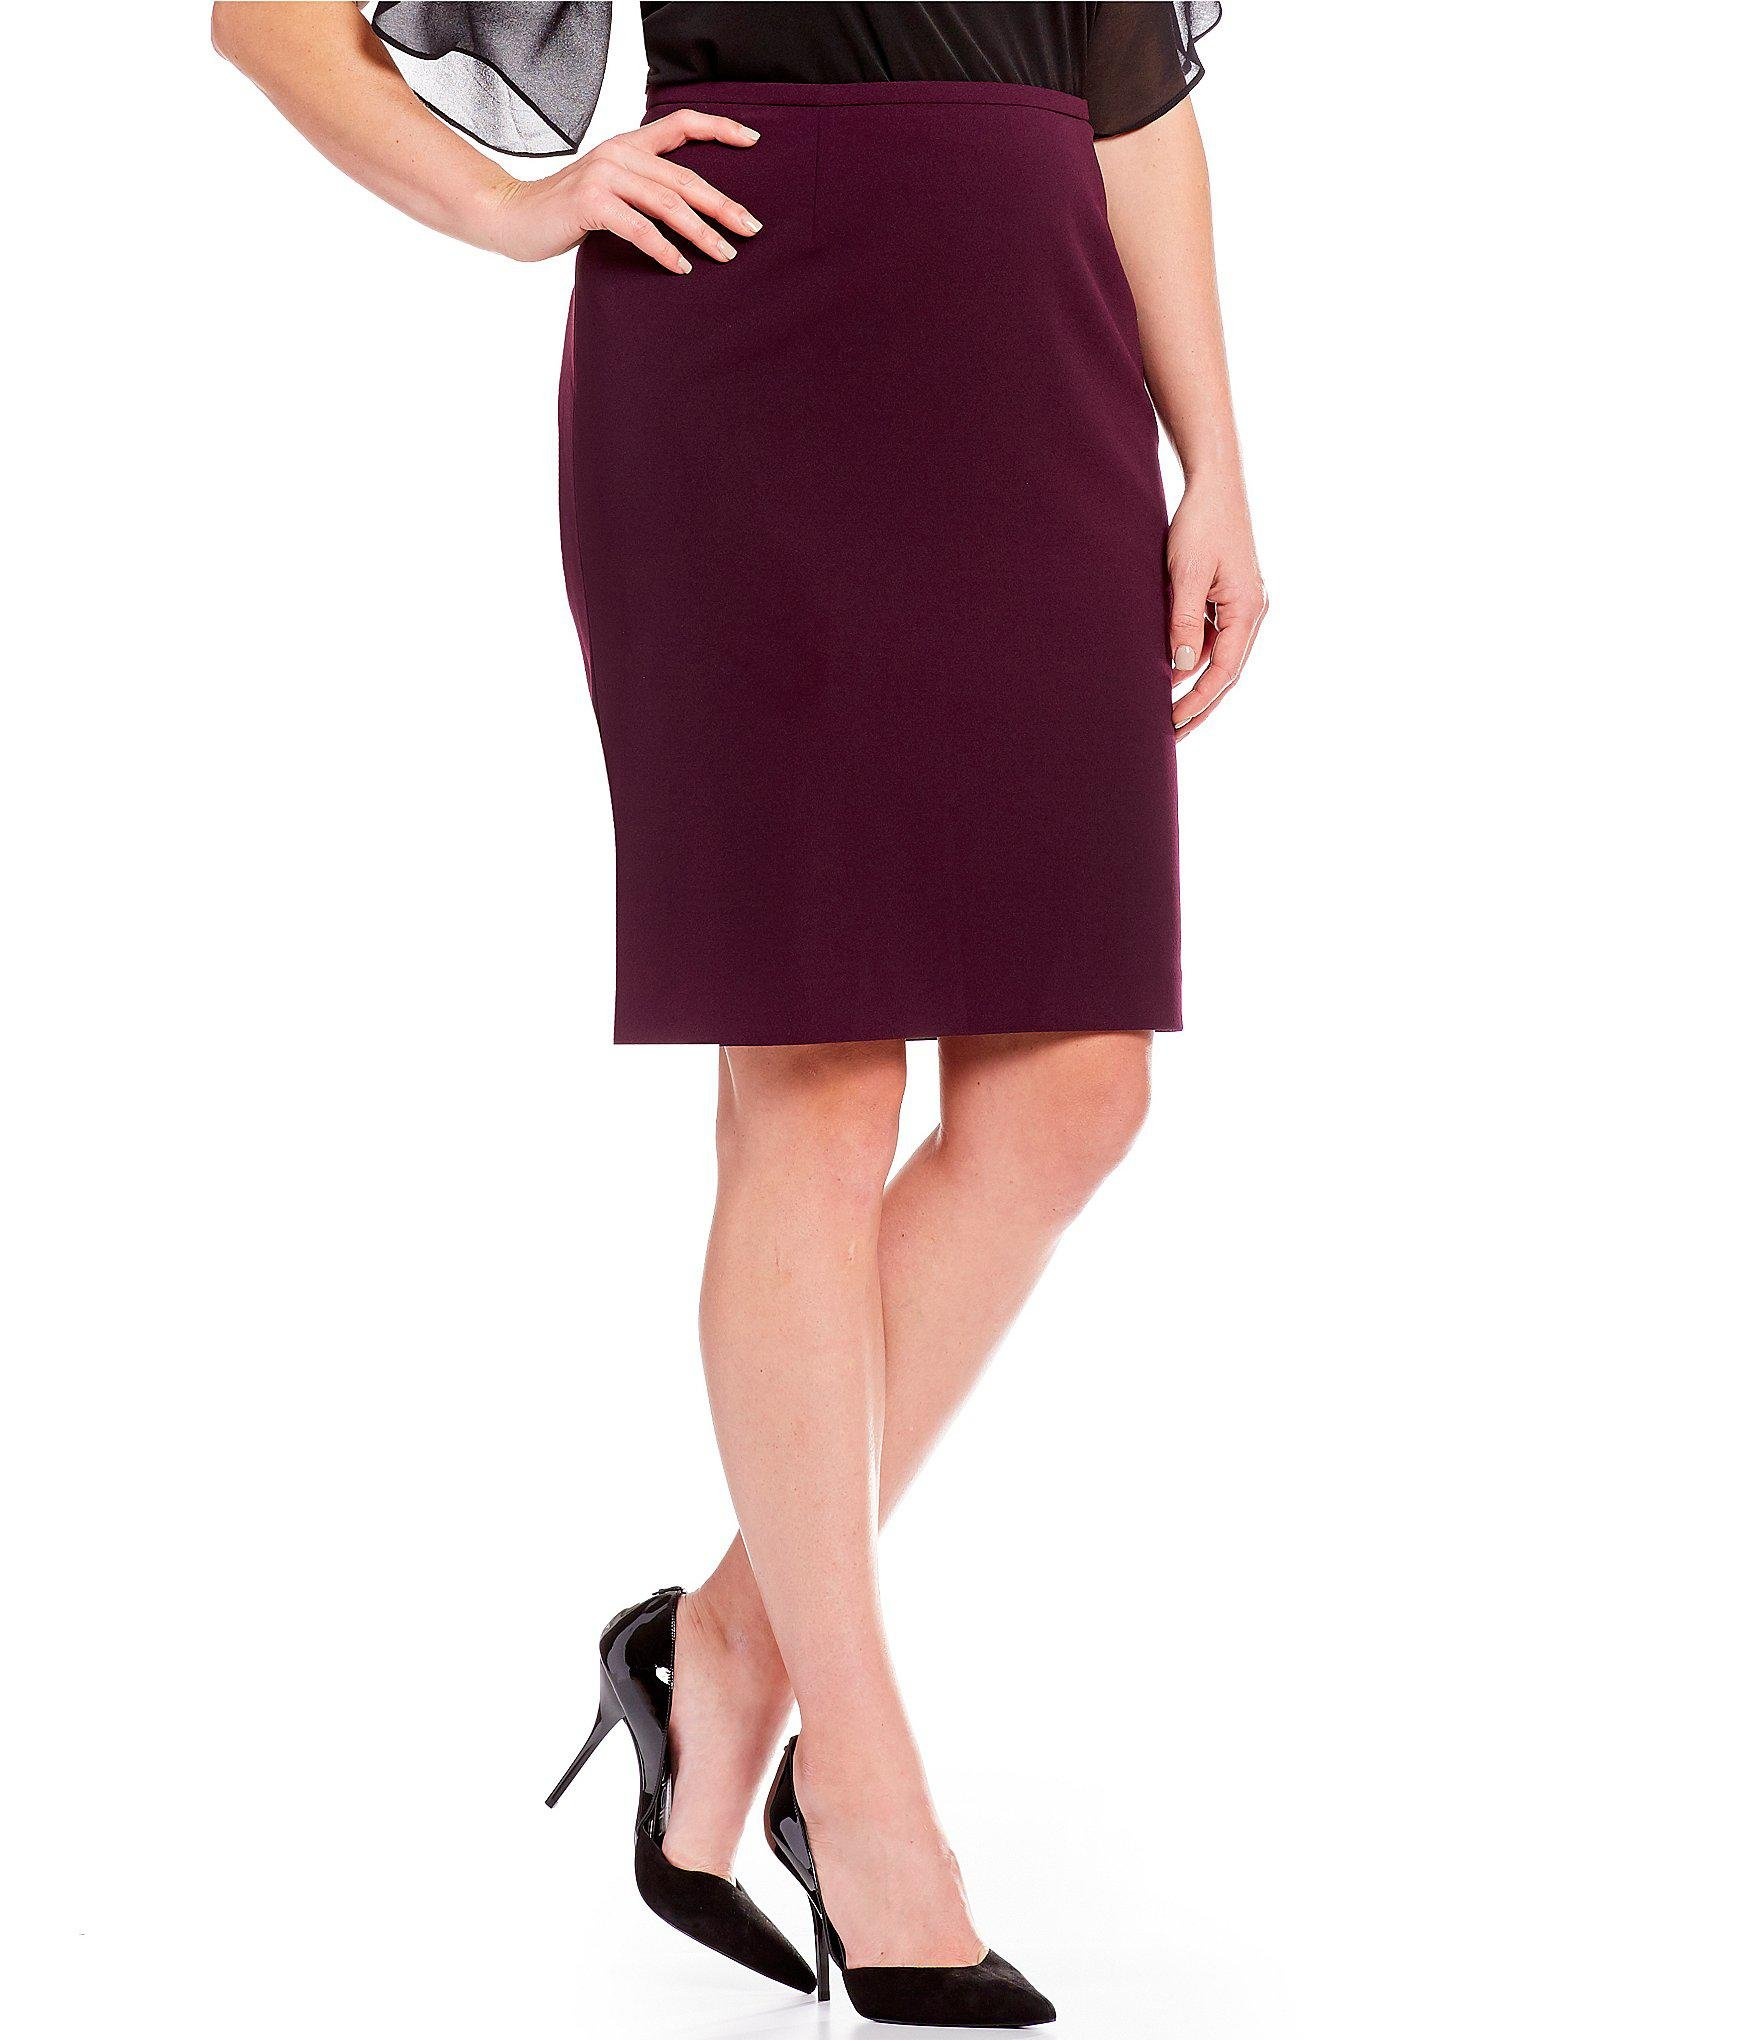 dc9c53d0c9 Lyst - Calvin Klein Plus Size Scuba Crepe Pencil Skirt in Purple